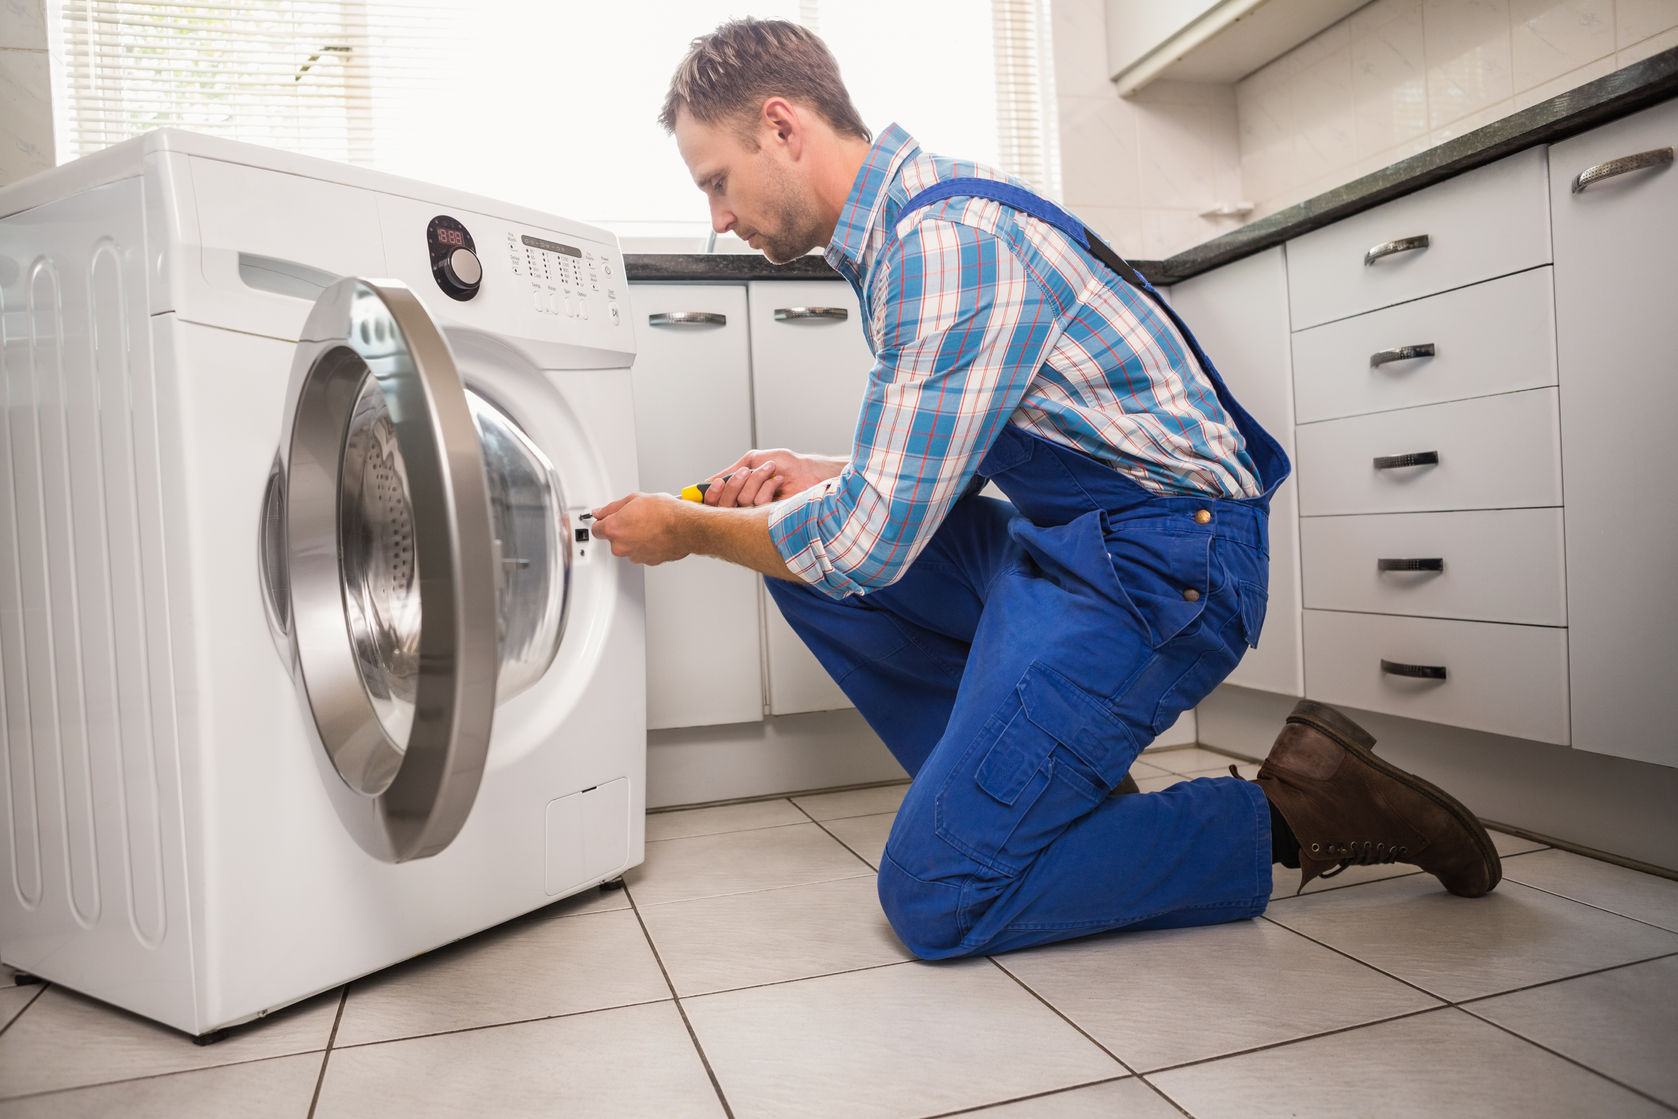 33949789 - handyman fixing a washing machine in the kitchen